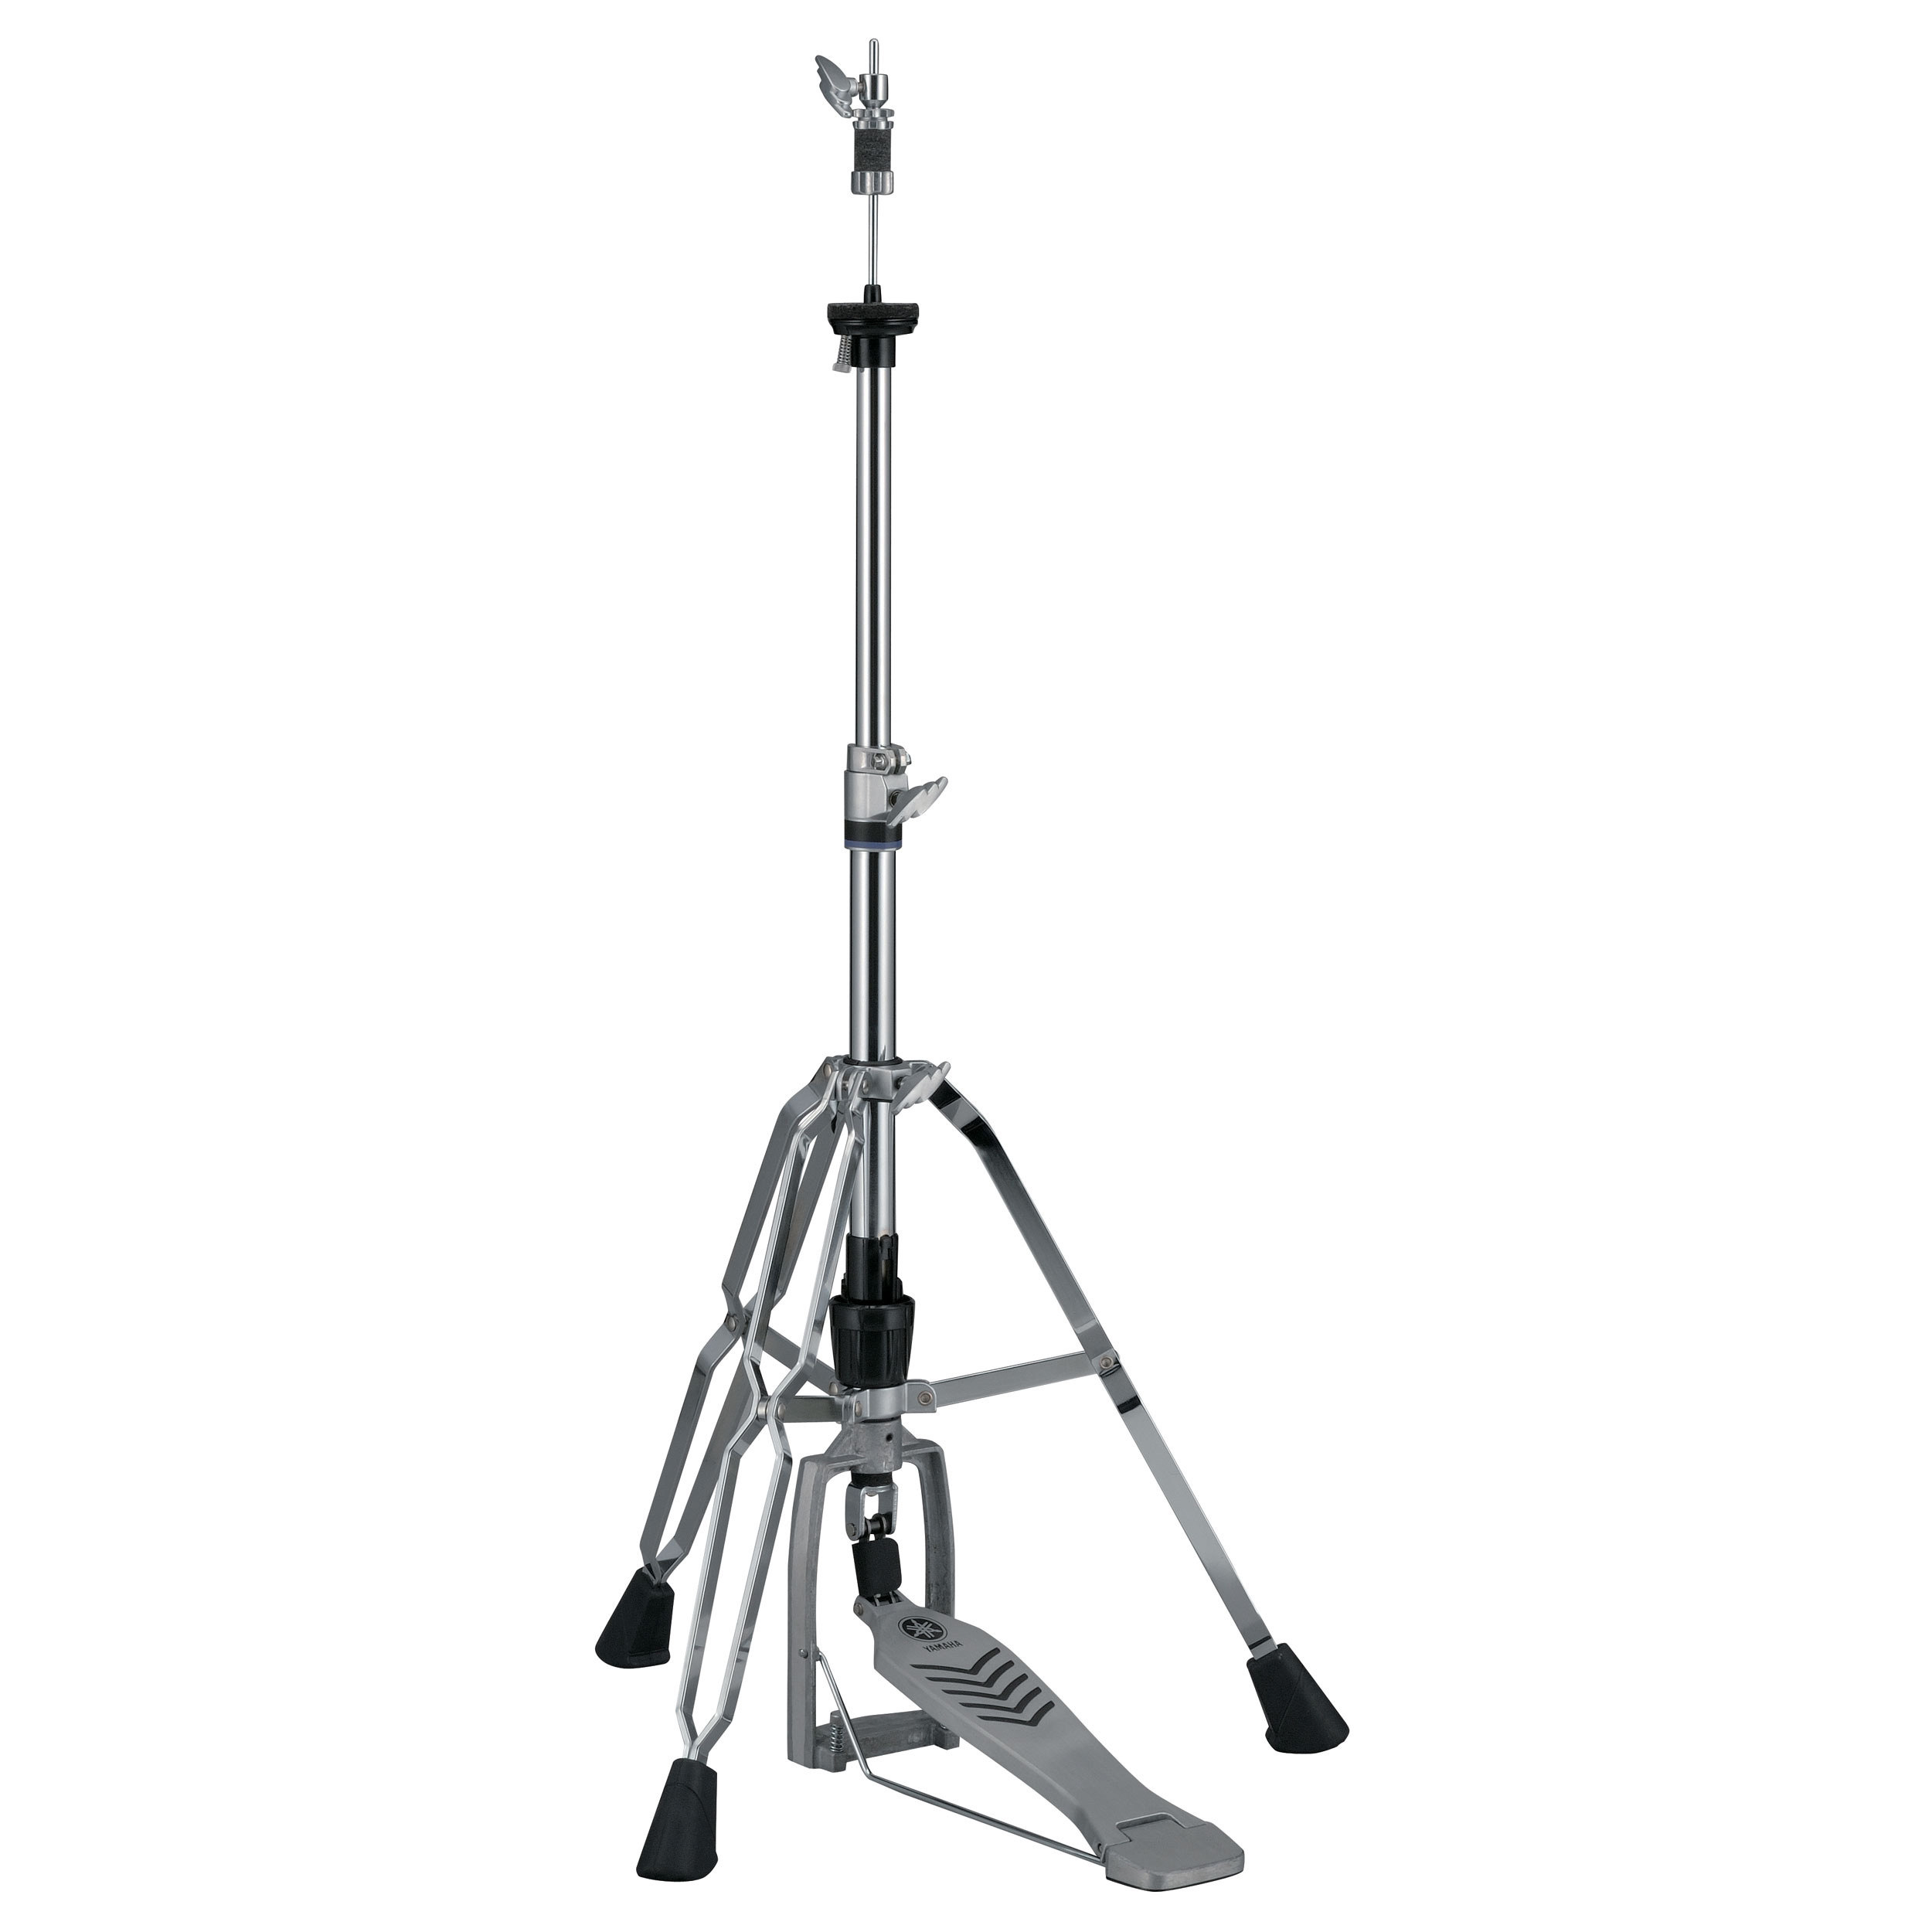 Yamaha HS-850 Double-Braced Rotating Leg Hi Hat Stand